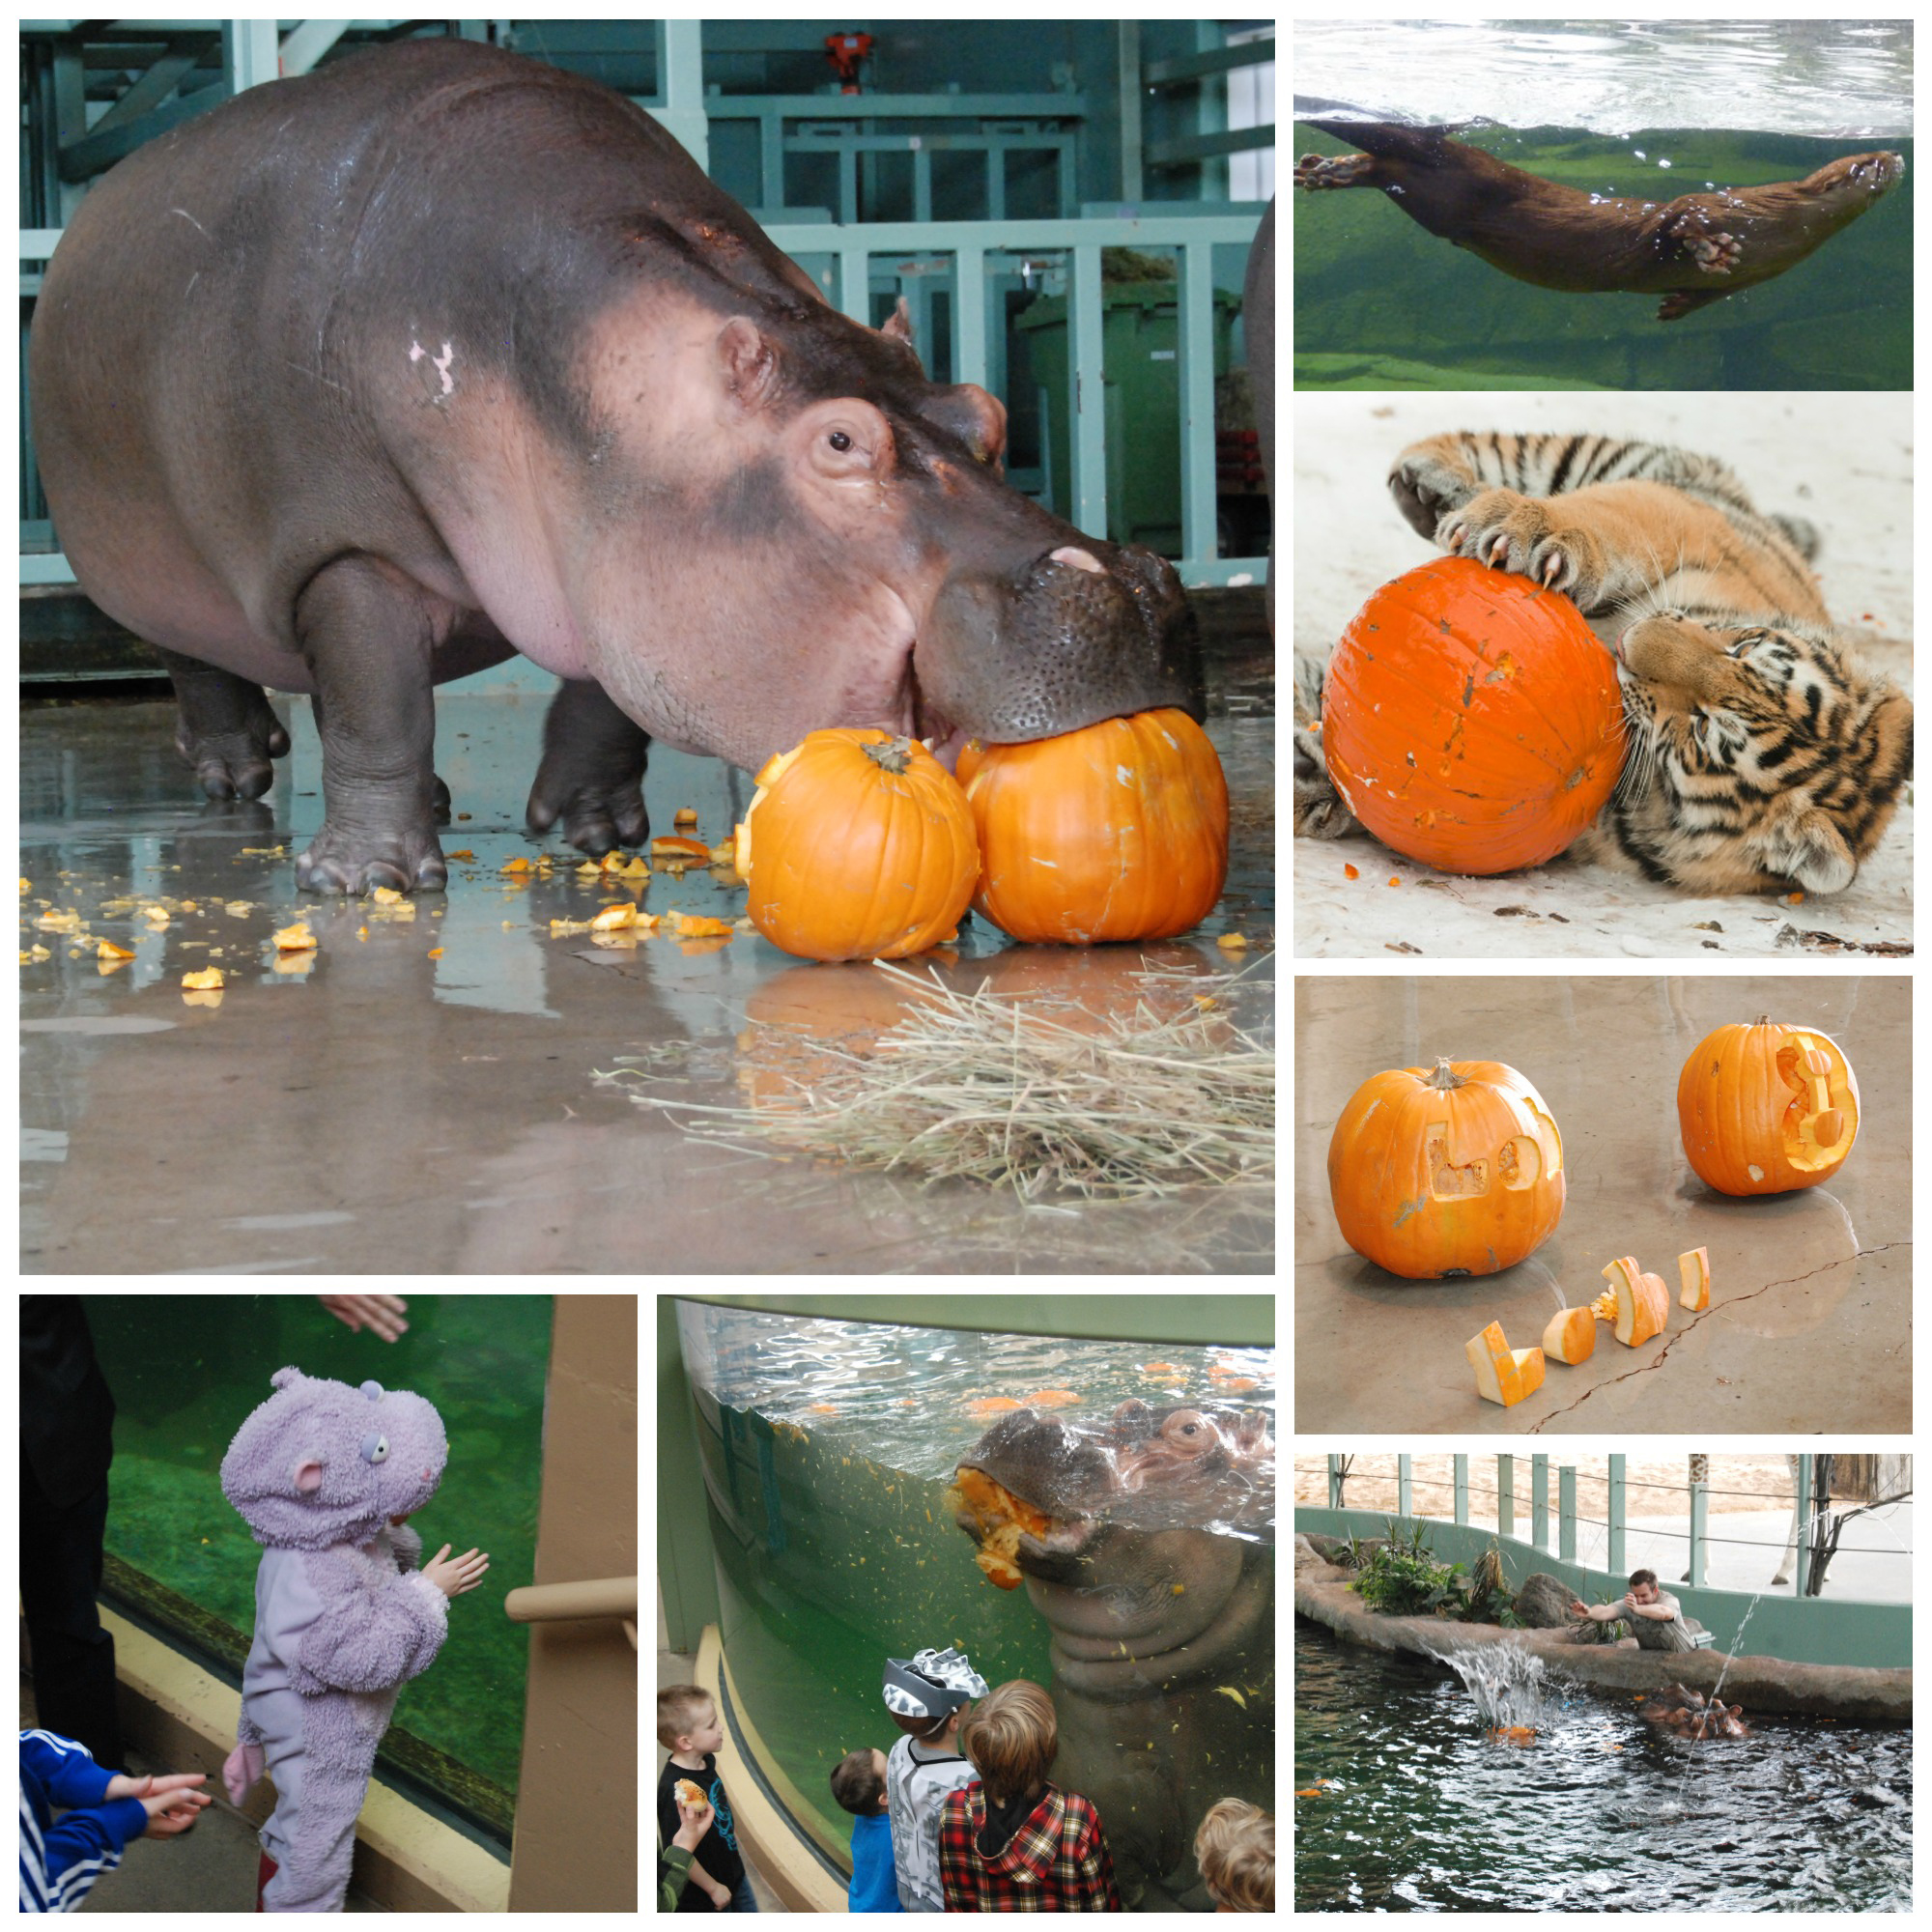 Halloween Enrichment is a howl Calgary Zoo  Blog - This Years Halloween